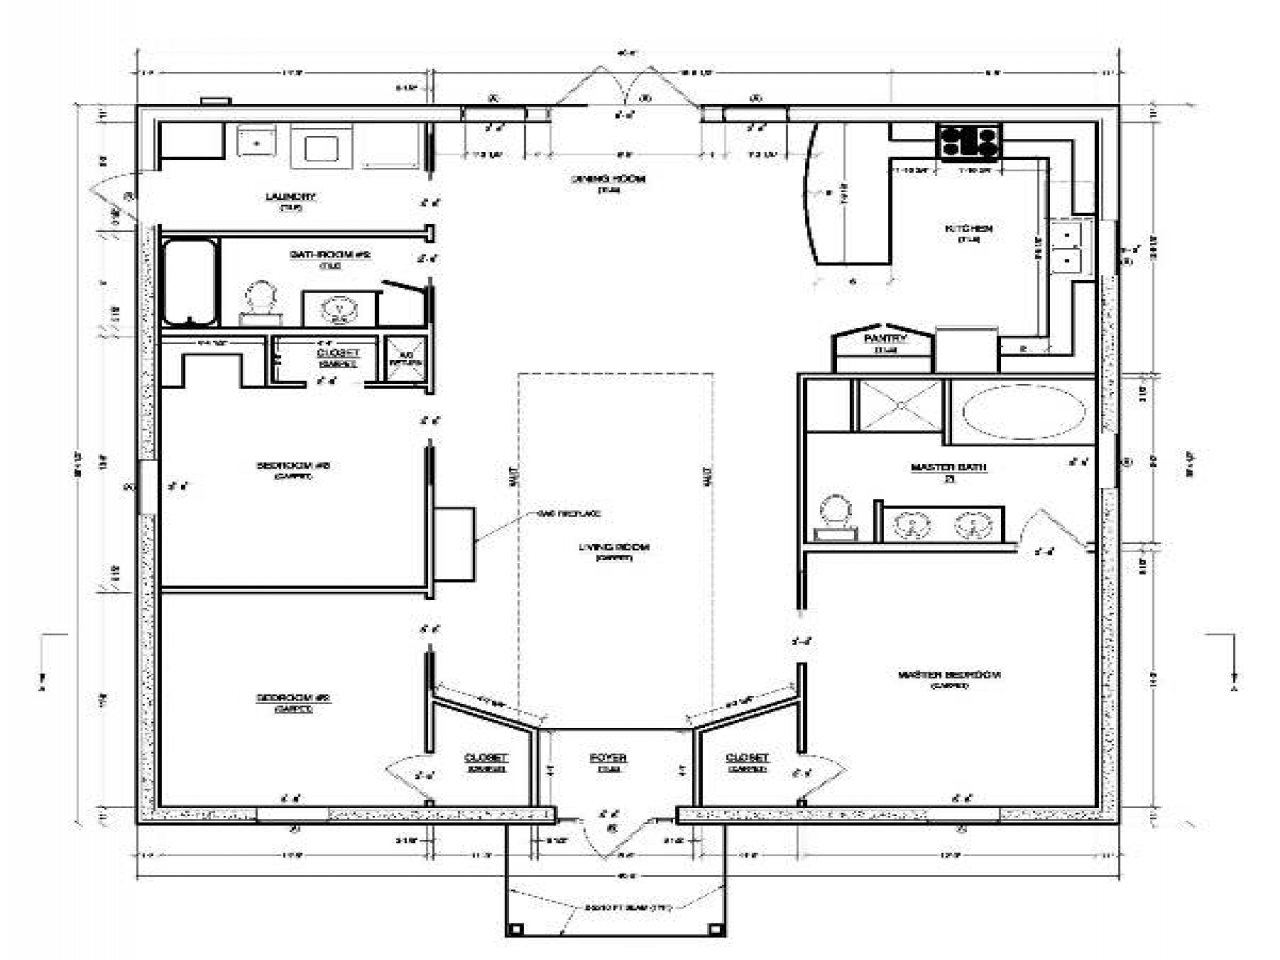 Best small house plans simple small house plans plans of for Best ranch house plans 2016